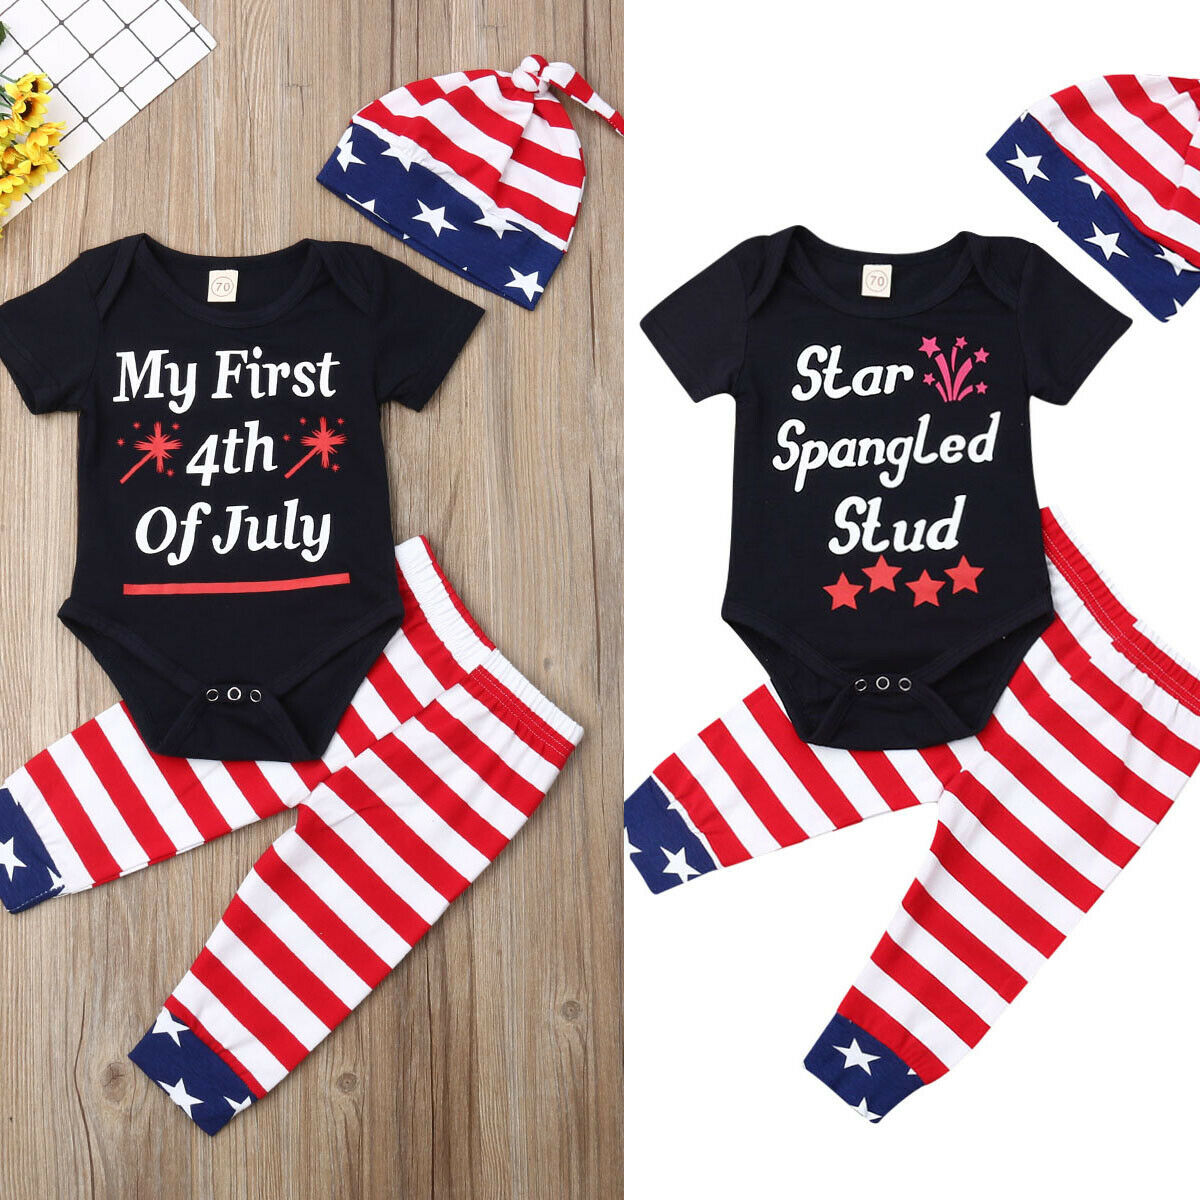 My First 4th of July Baby Boys US Flag Stars Stripes Romper Shorts Pants Outfit